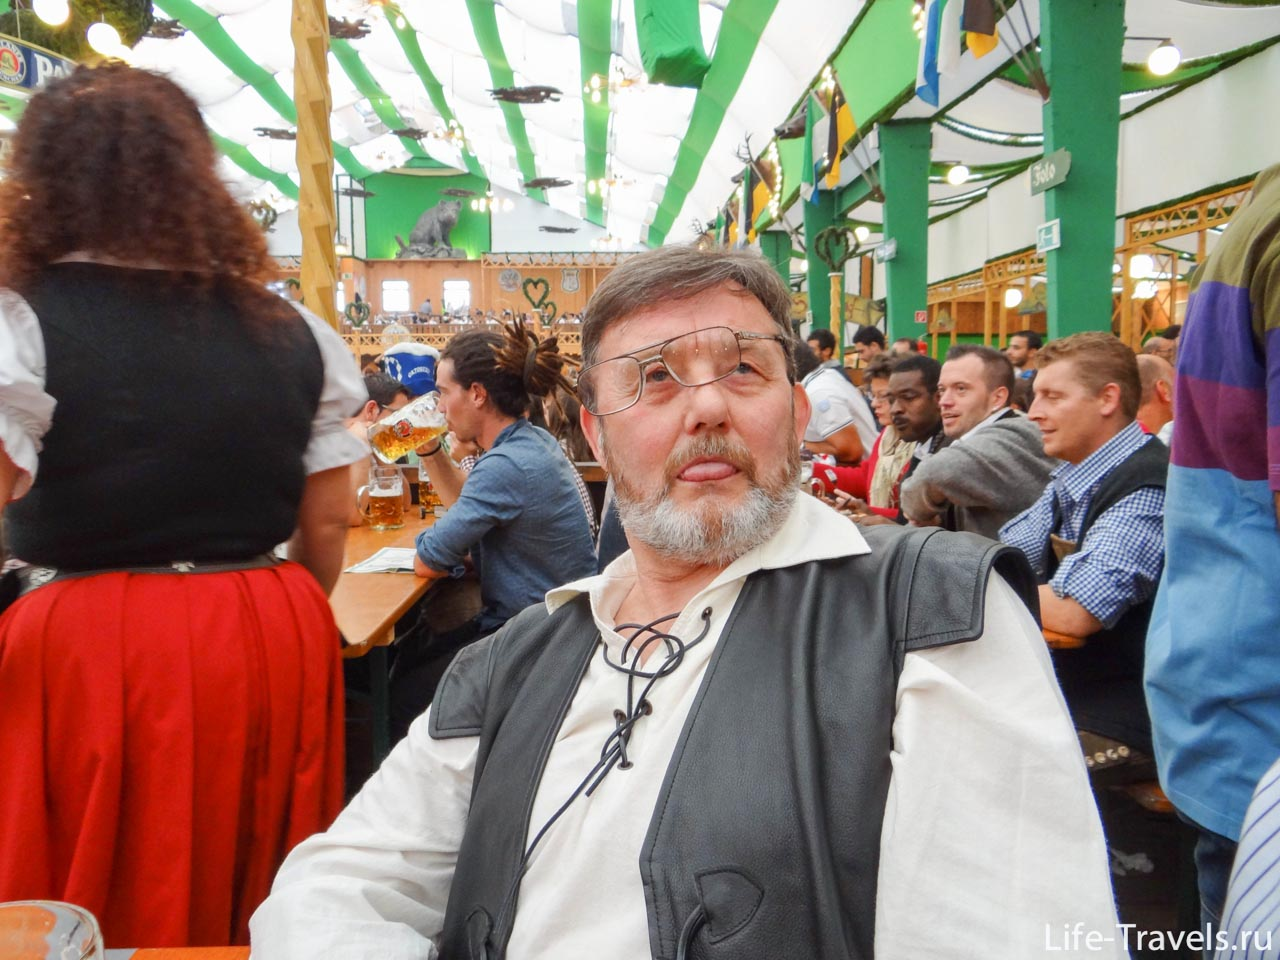 Scotsman at Oktoberfest